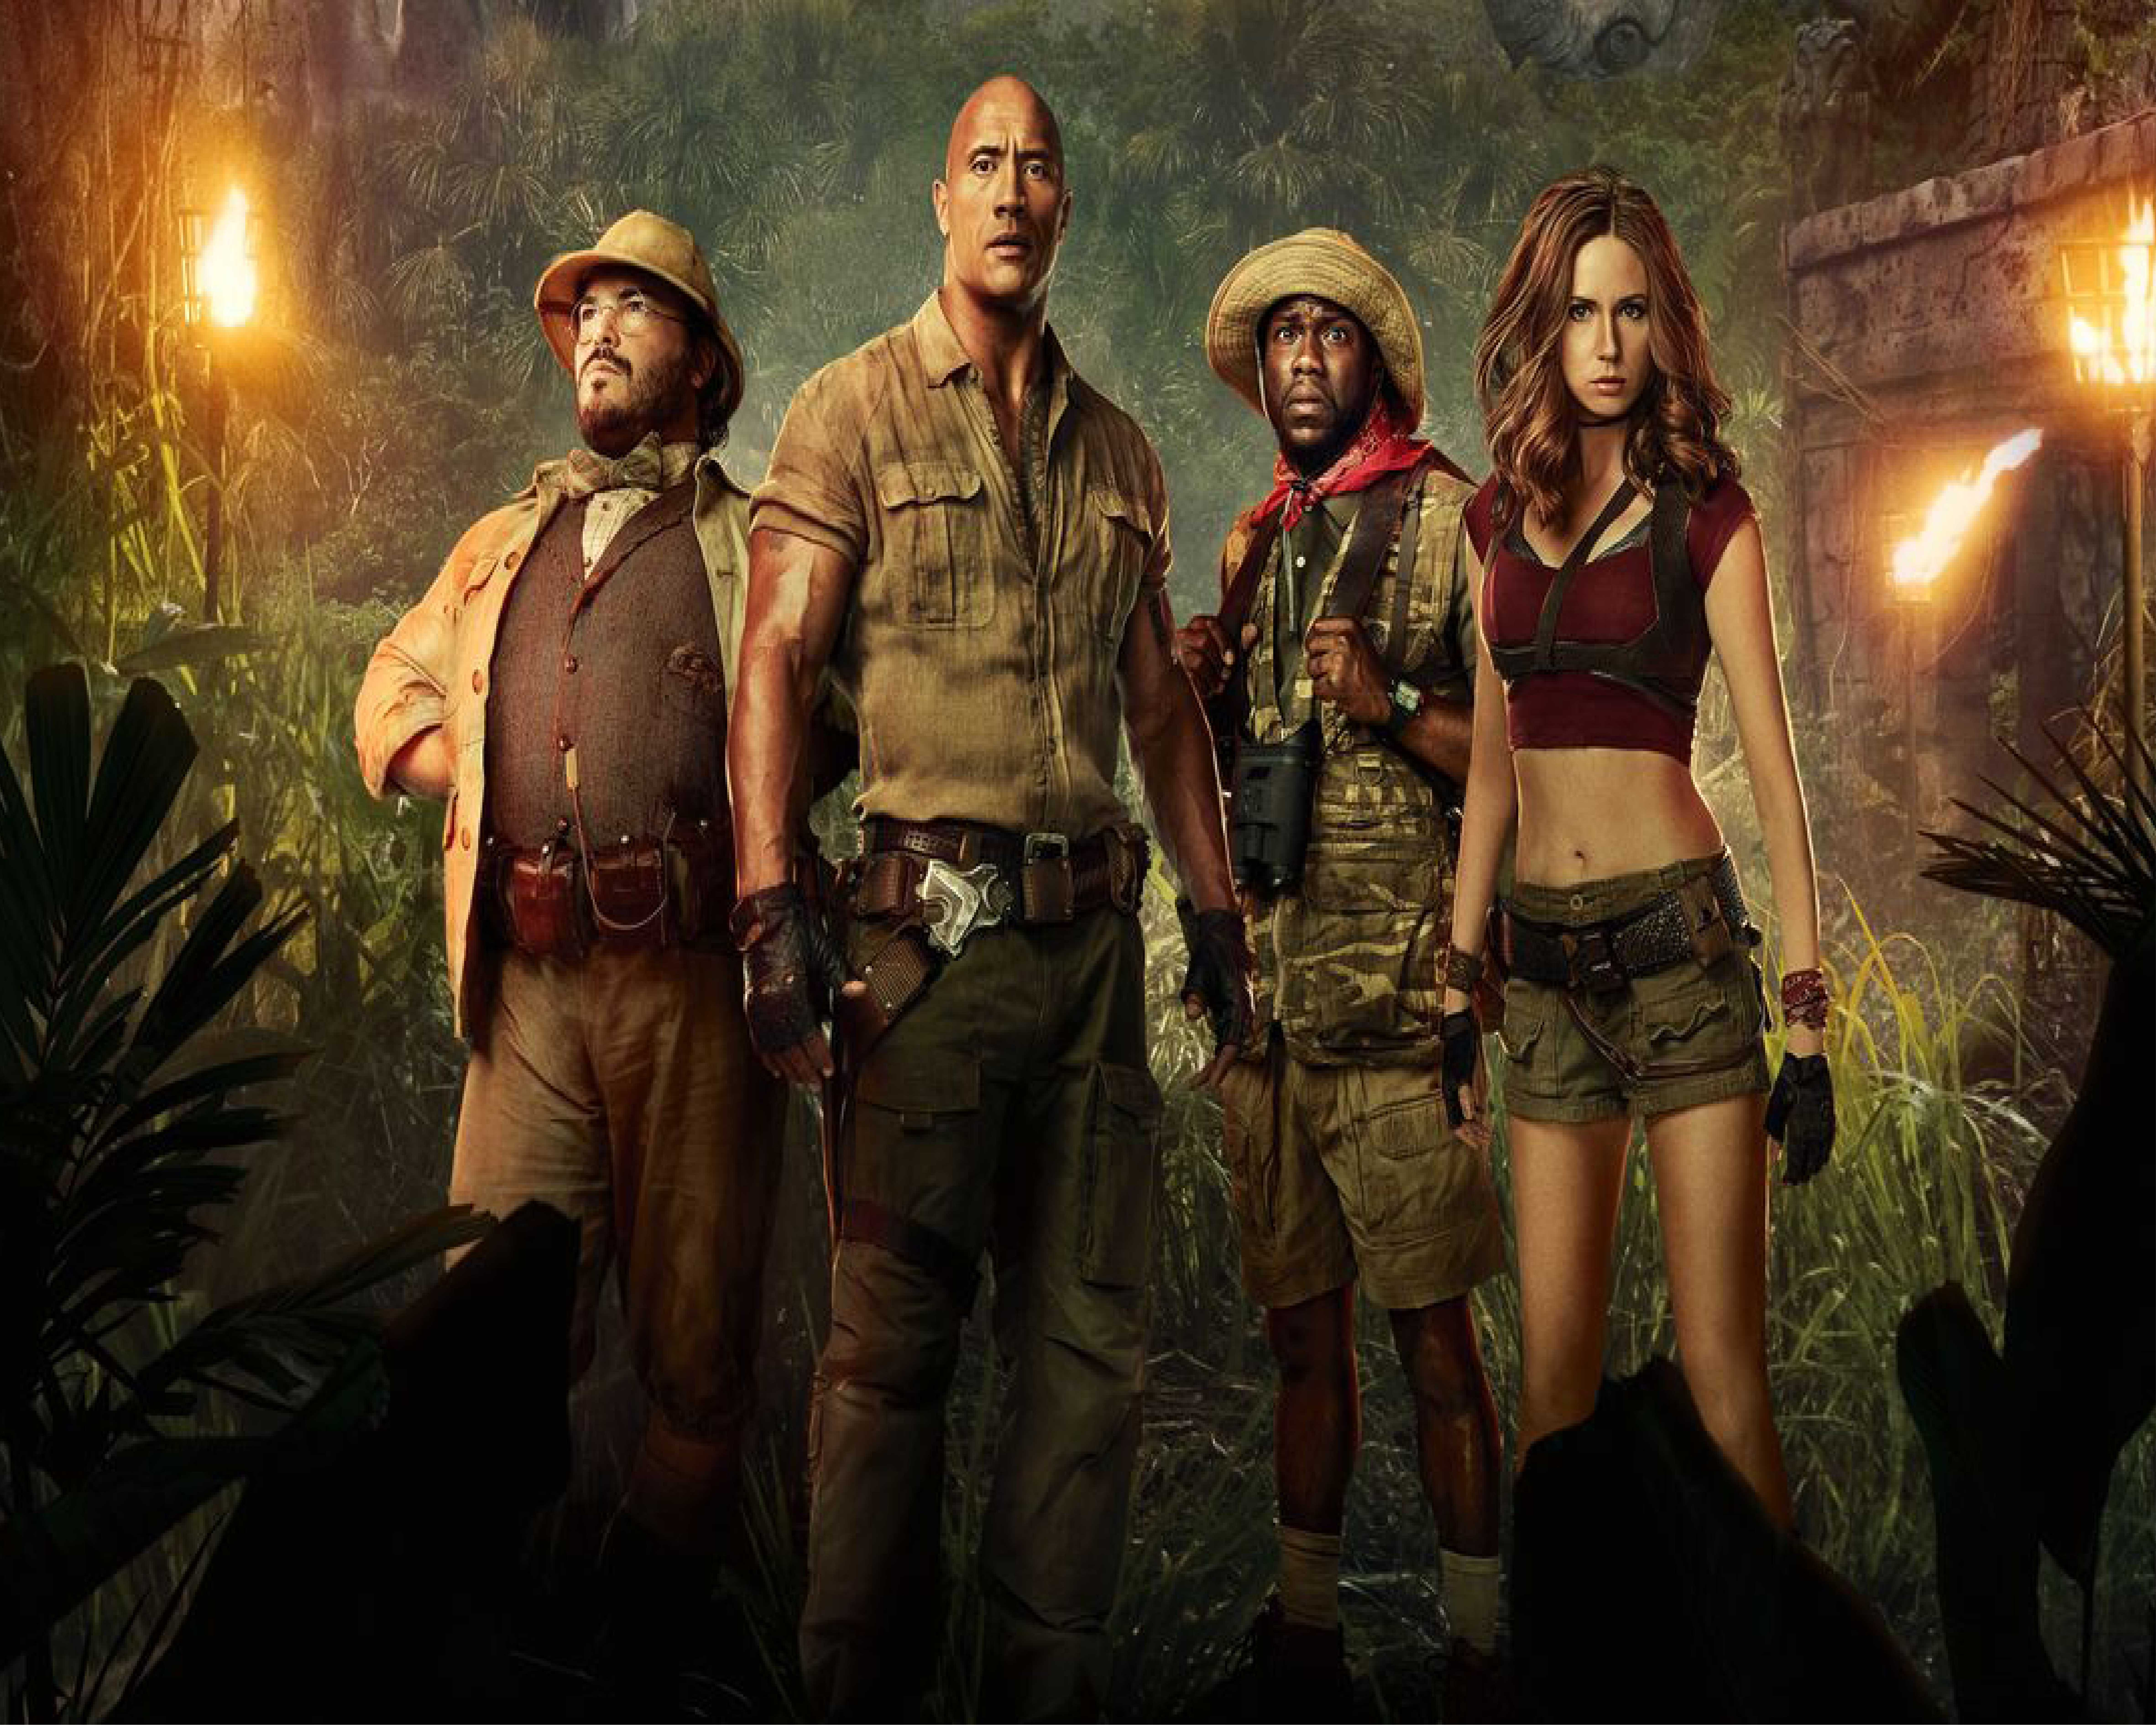 Jumanji: Welcome back to the theaters